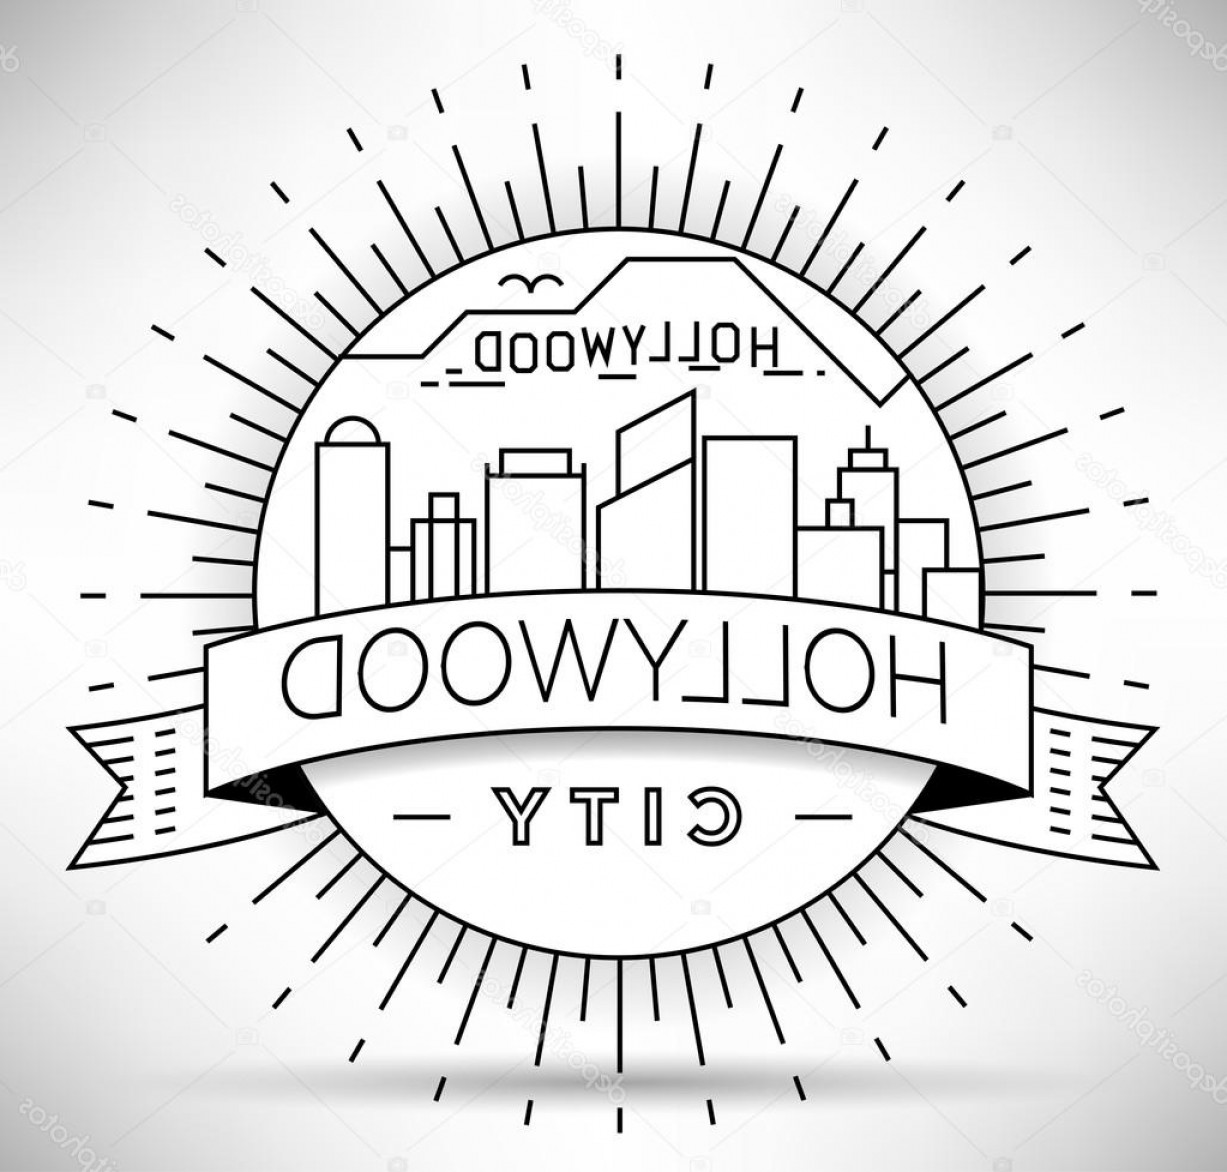 Hollywood Skyline Silhouette Vector: Stock Illustration Minimal Hollywood Skyline With Typographic